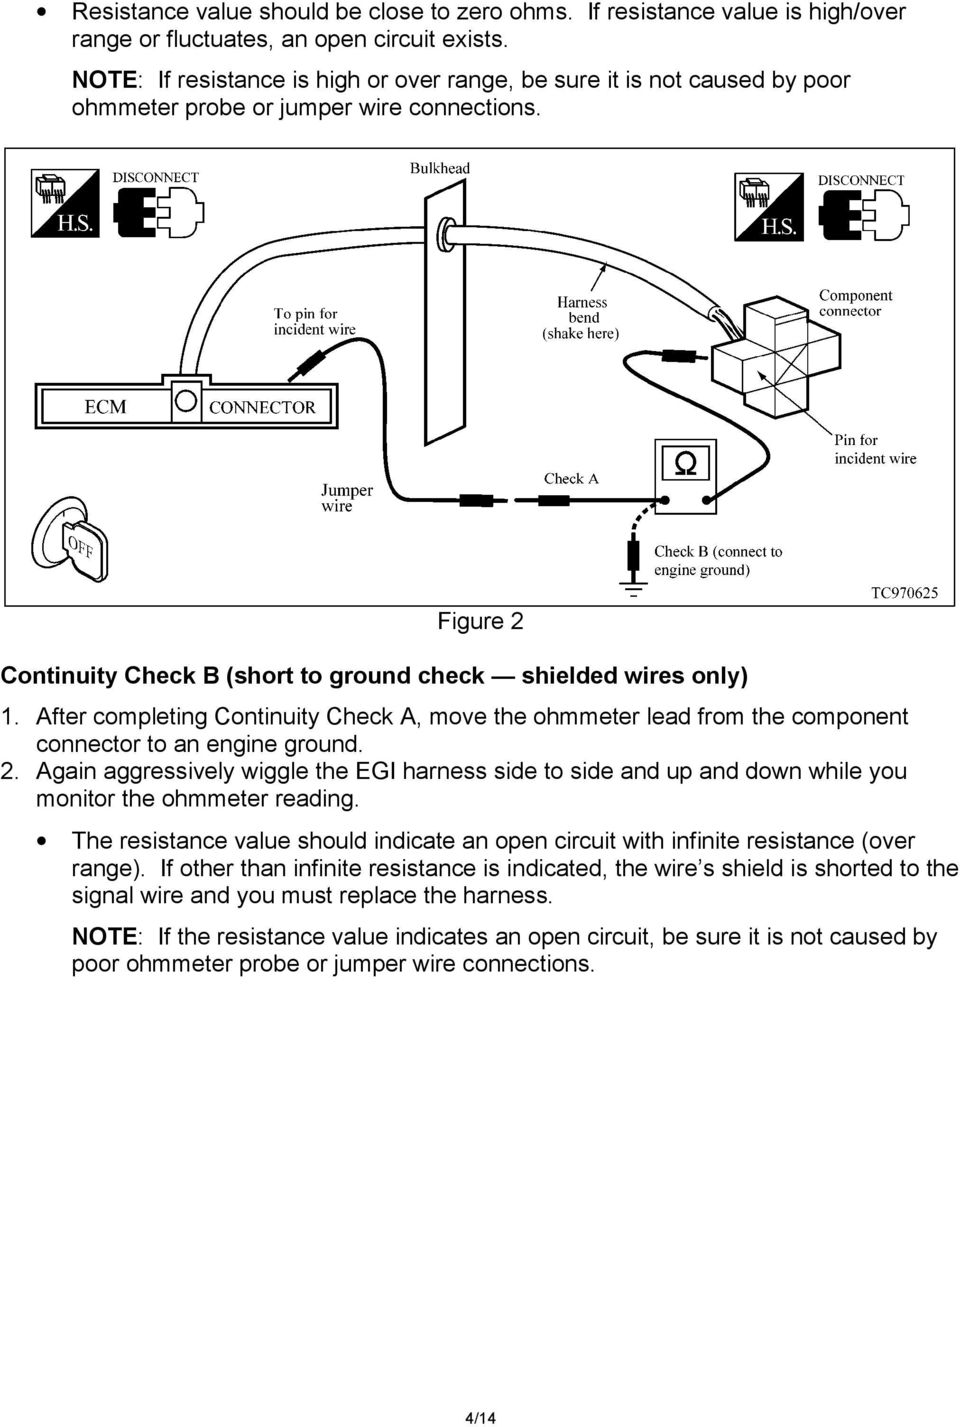 Maxima Egi Harness Wire Breakage Diagnosis And Repair Procedure Pdf Tps Wiring Diagram 2003 Rav4 After Completing Continuity Check A Move The Ohmmeter Lead From Component Connector To An